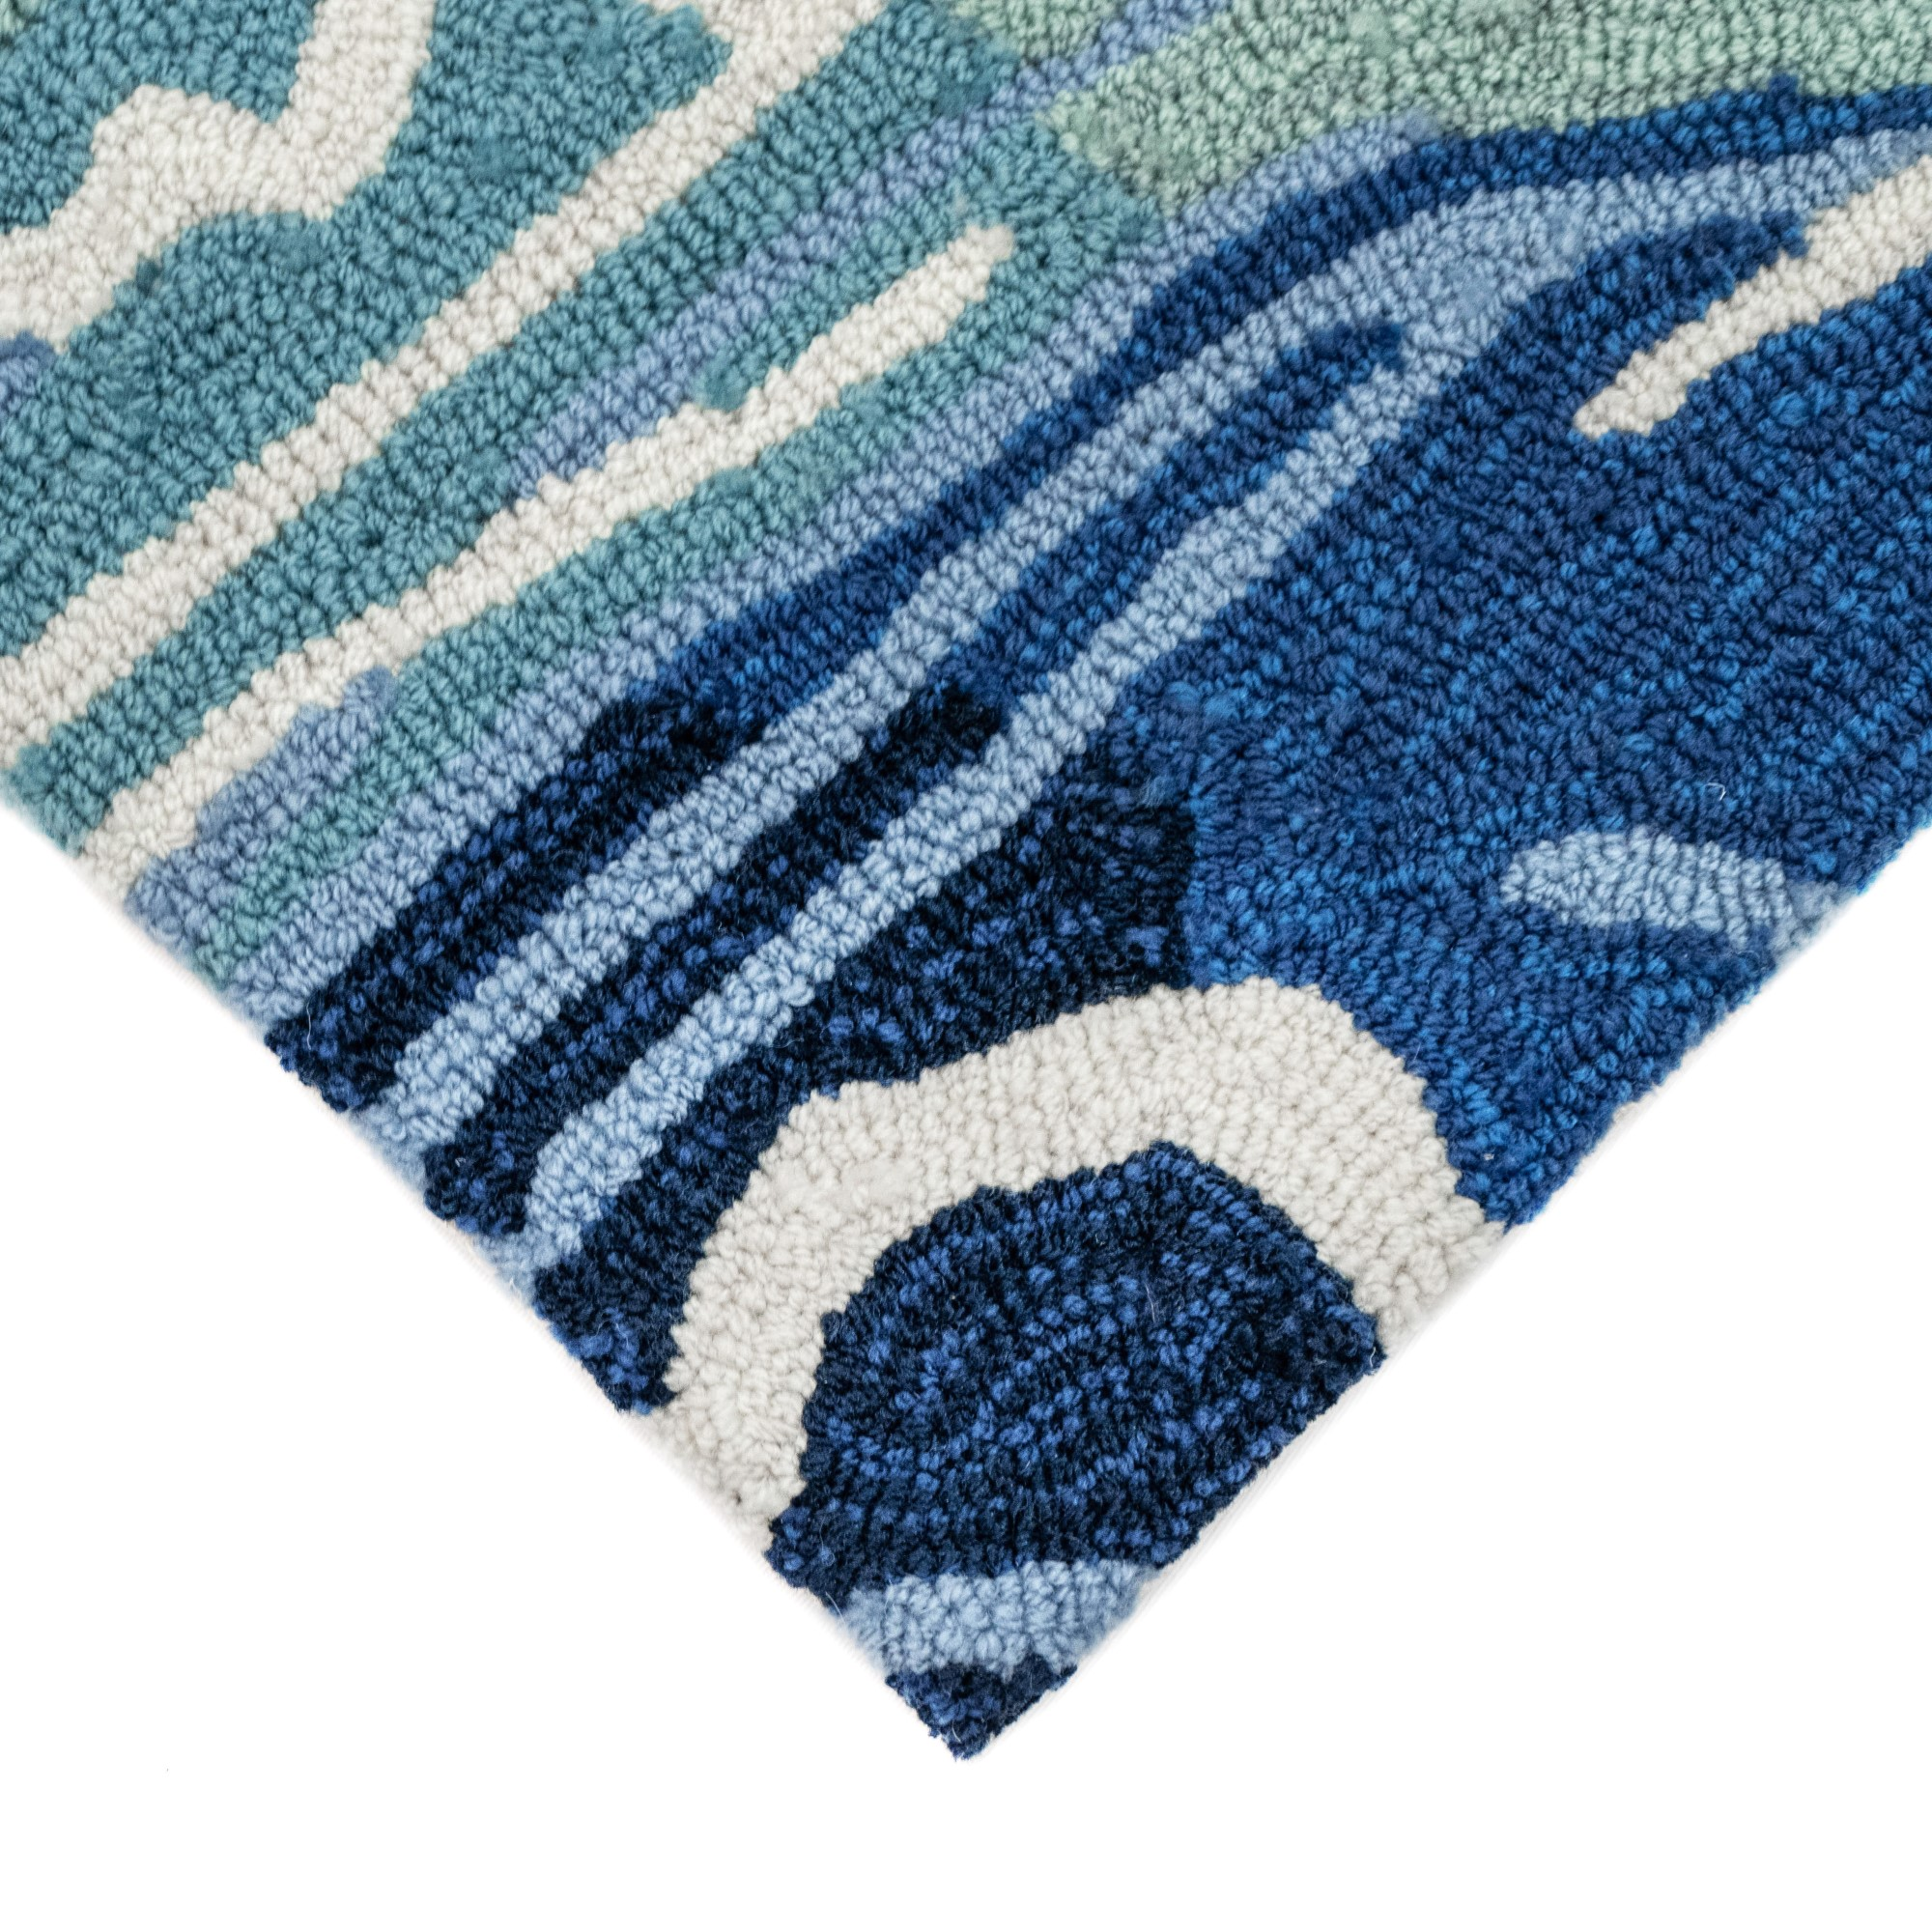 Liora Manne Capri Jelly Fish Rugs Rugs Direct